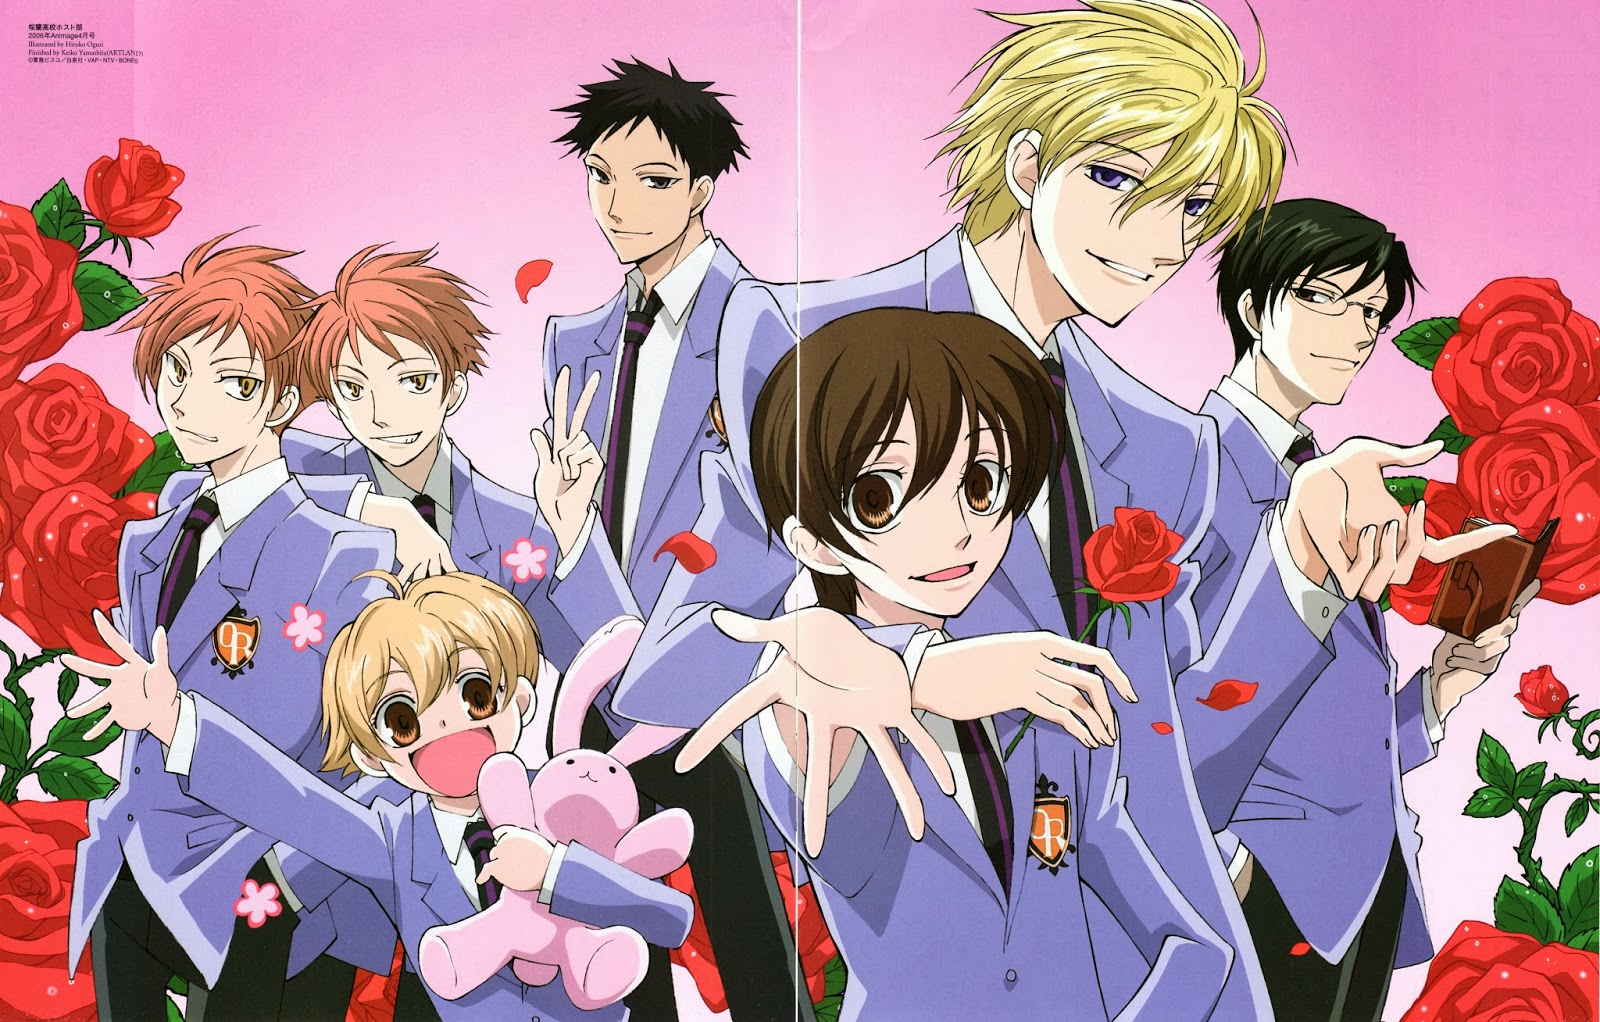 This anime is full of pretty anime boys and one girl it would be a dream come true for any ohshc fangirl to find herself amongst this group of characters